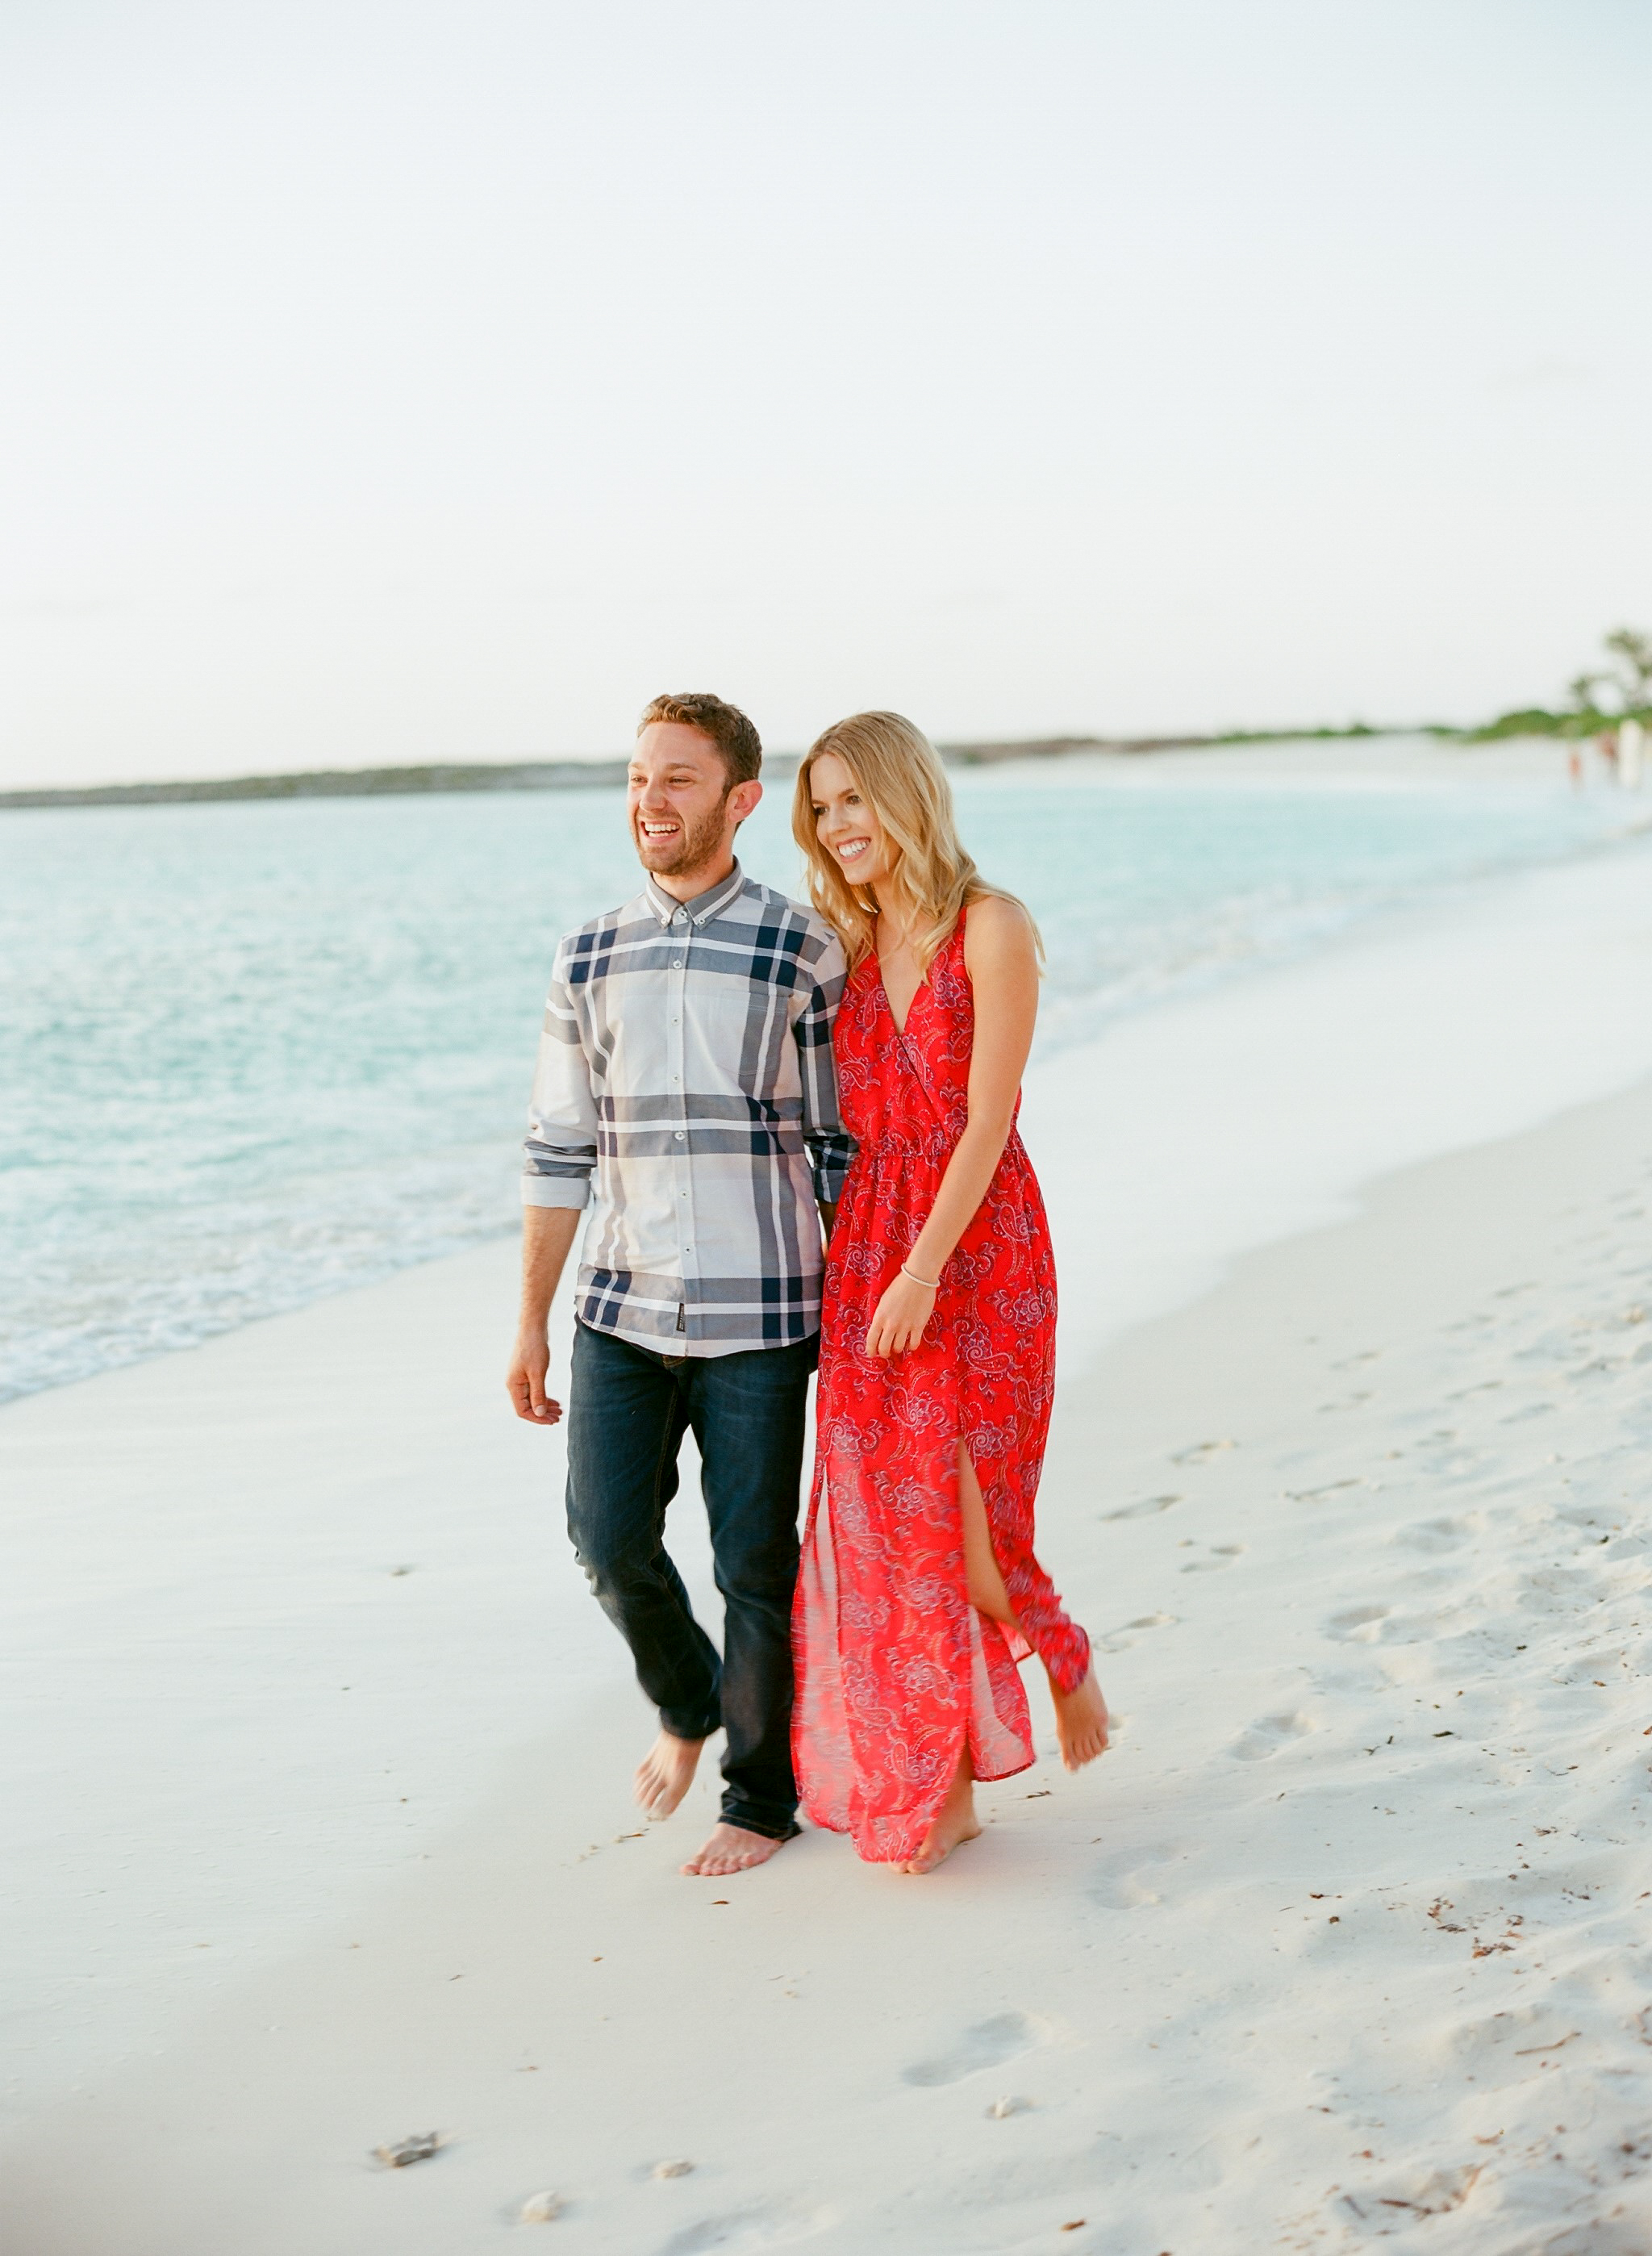 lauren jonas destintation film wedding photographer bahamas